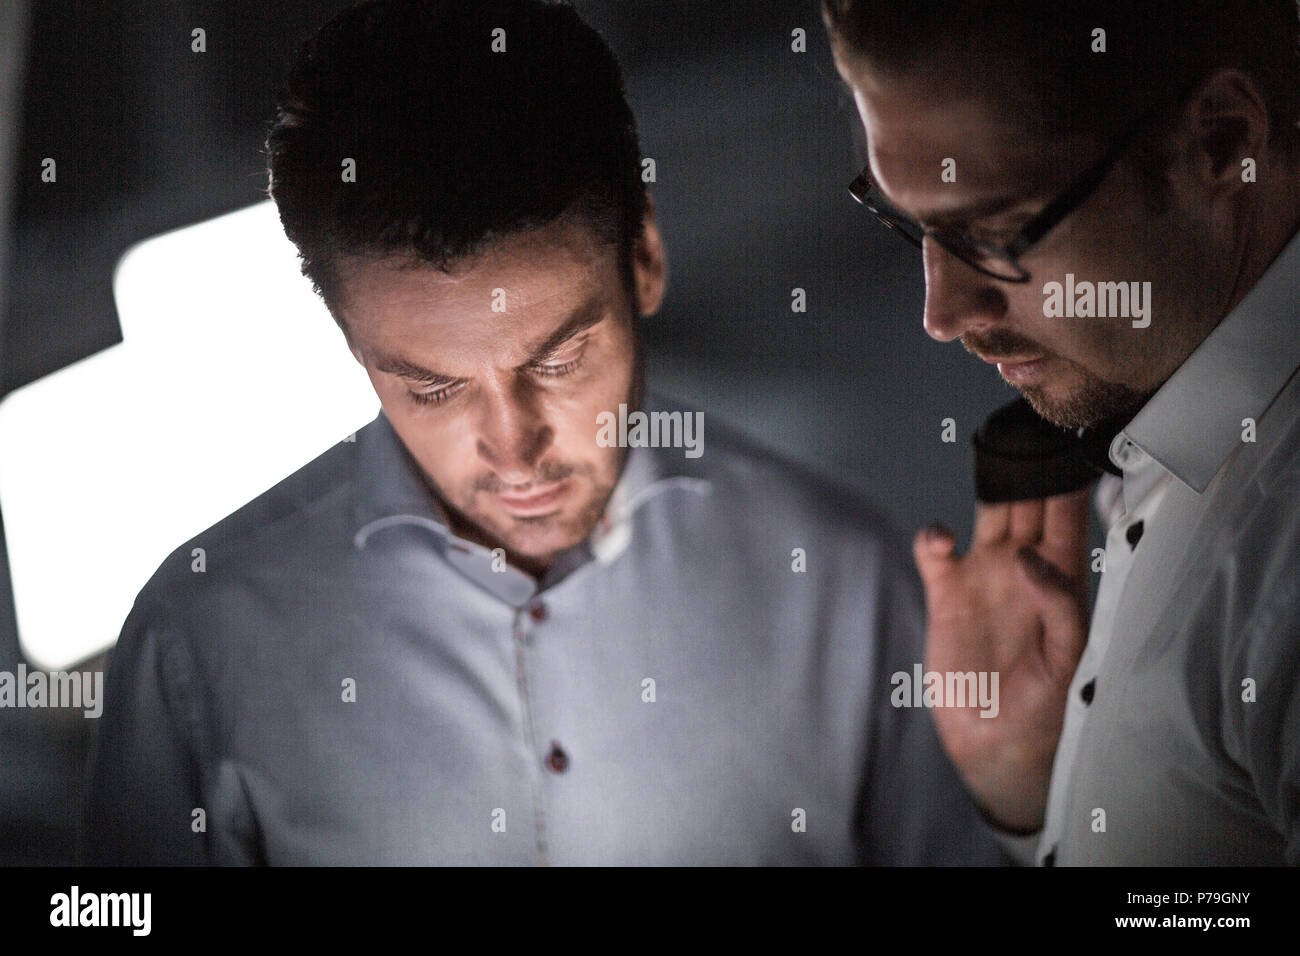 close up.two business men in the workplace in the evening - Stock Image